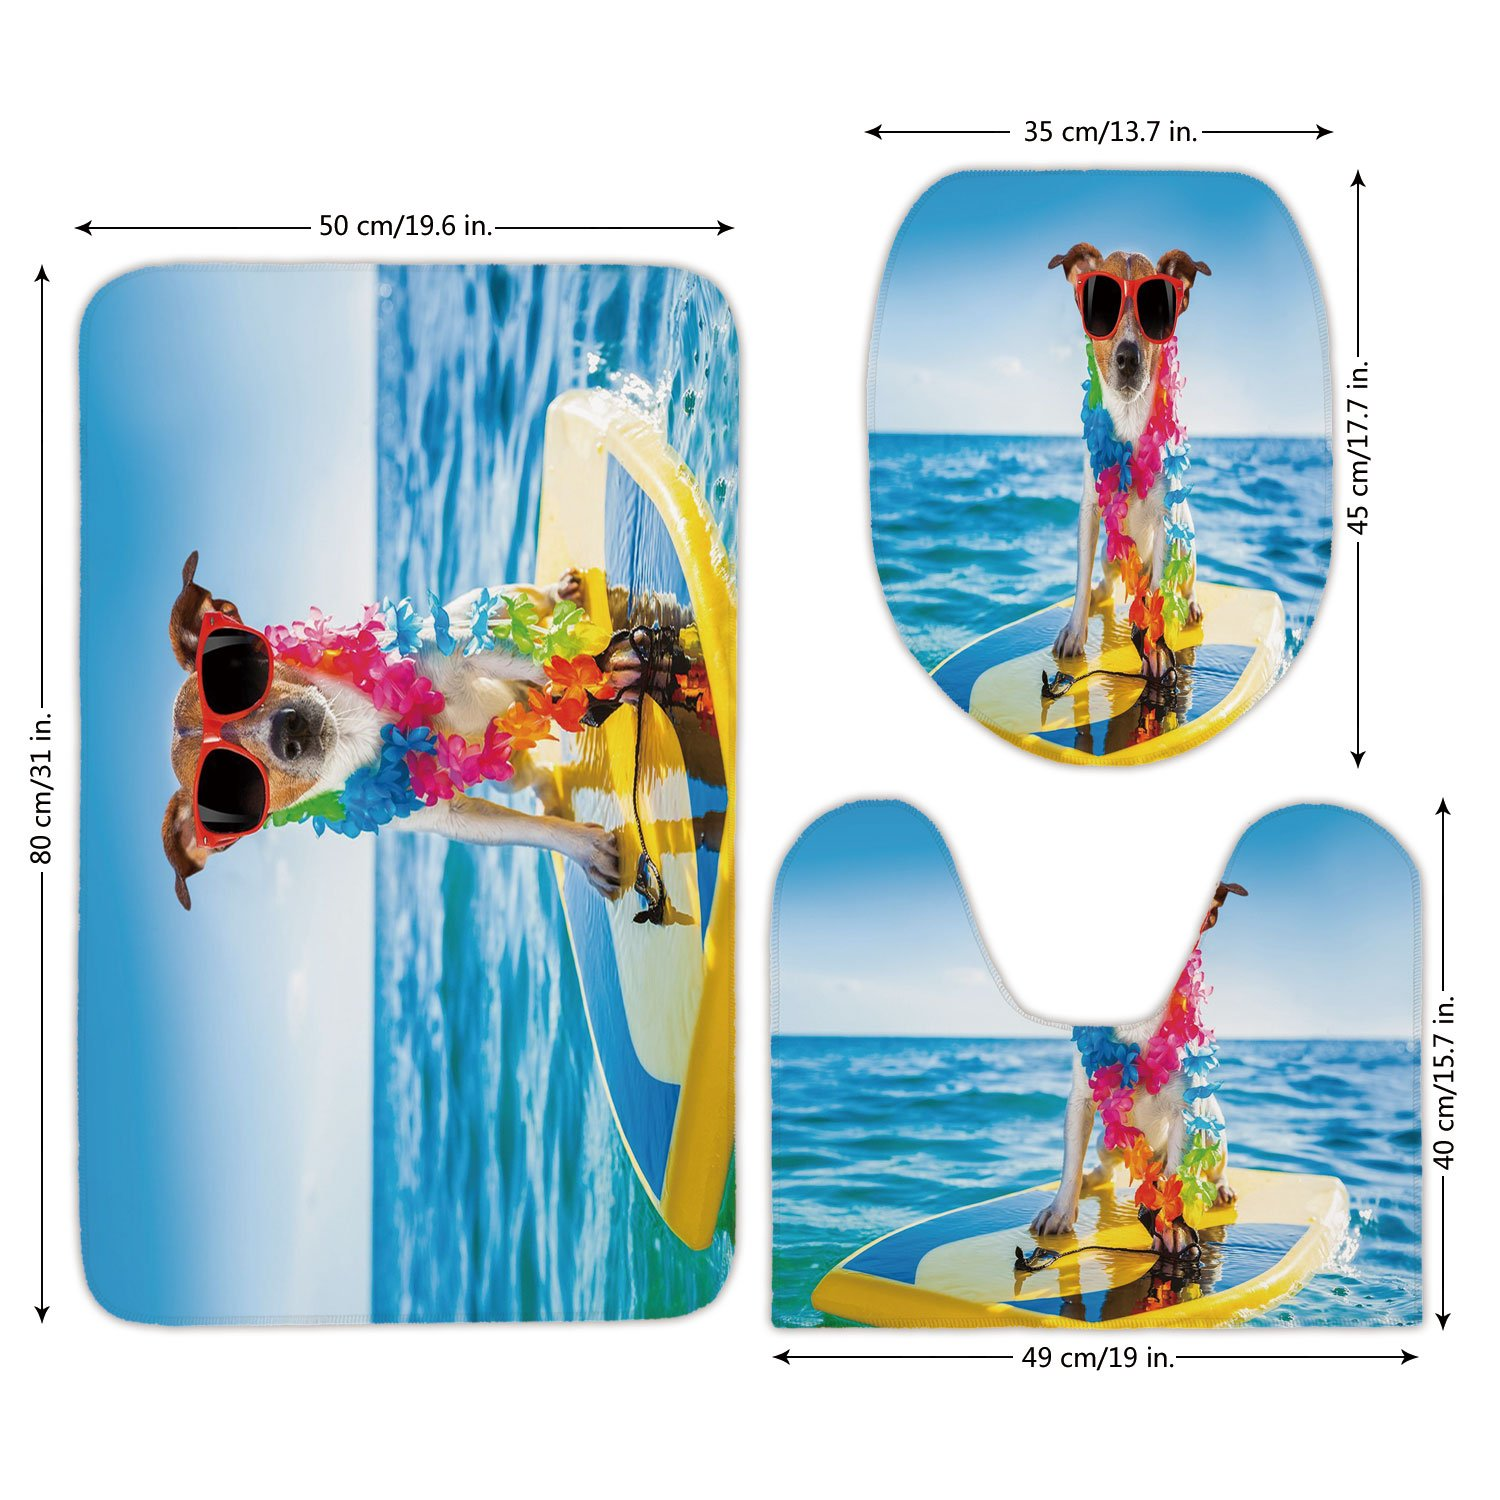 3 Piece Bathroom Mat Set,Ride The Wave,Dog in the Ocean Surfing Cool Puppy Swimming Comic Coastal Animal Picture,Blue Yellow,Bath Mat,Bathroom Carpet Rug,Non-Slip